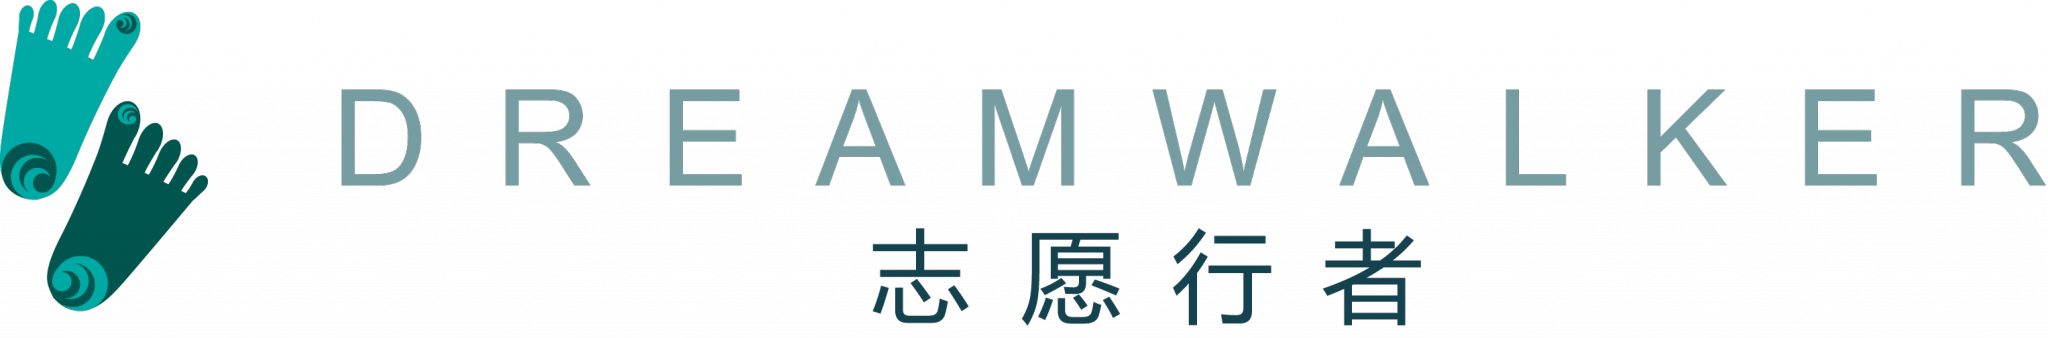 志愿行者DreamwalkerChina